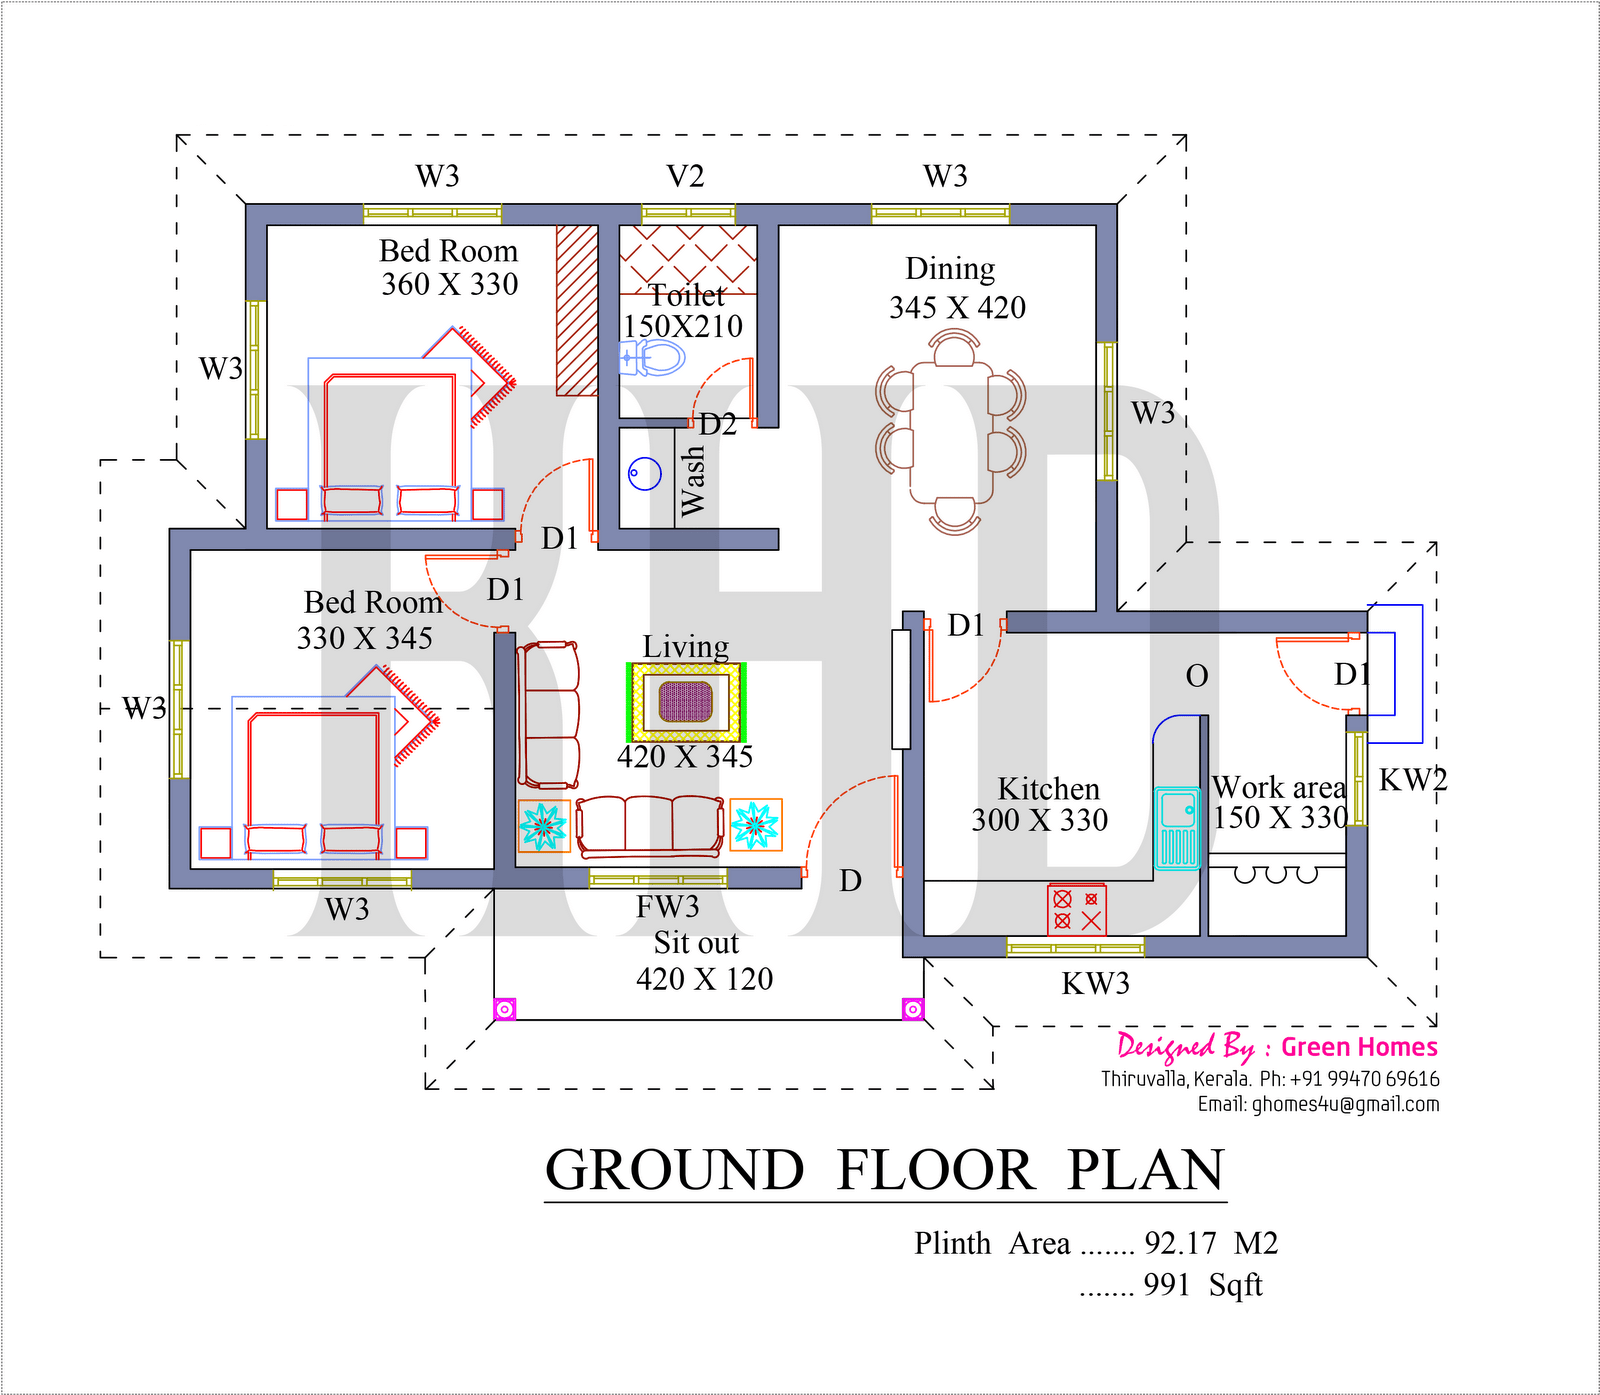 House Plans Square Feet Home Design Low Budget Kerala Homes Home